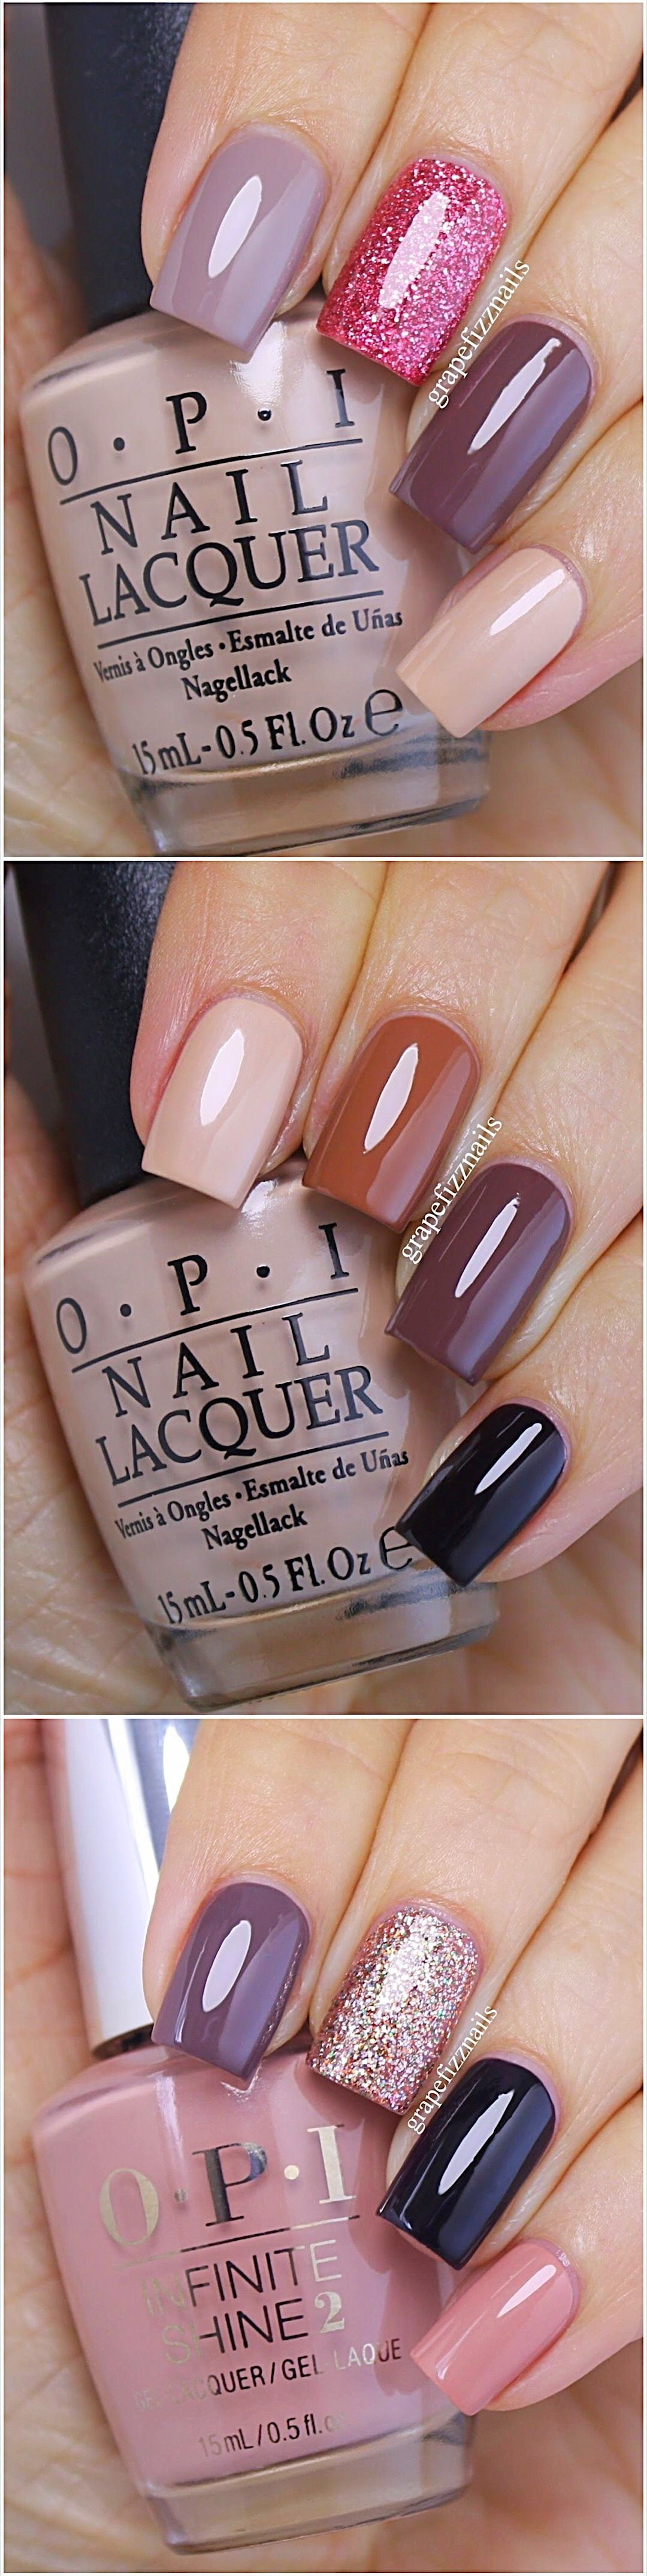 OPI Nail Polish Color Swatches  Opi nail polish colours Nail